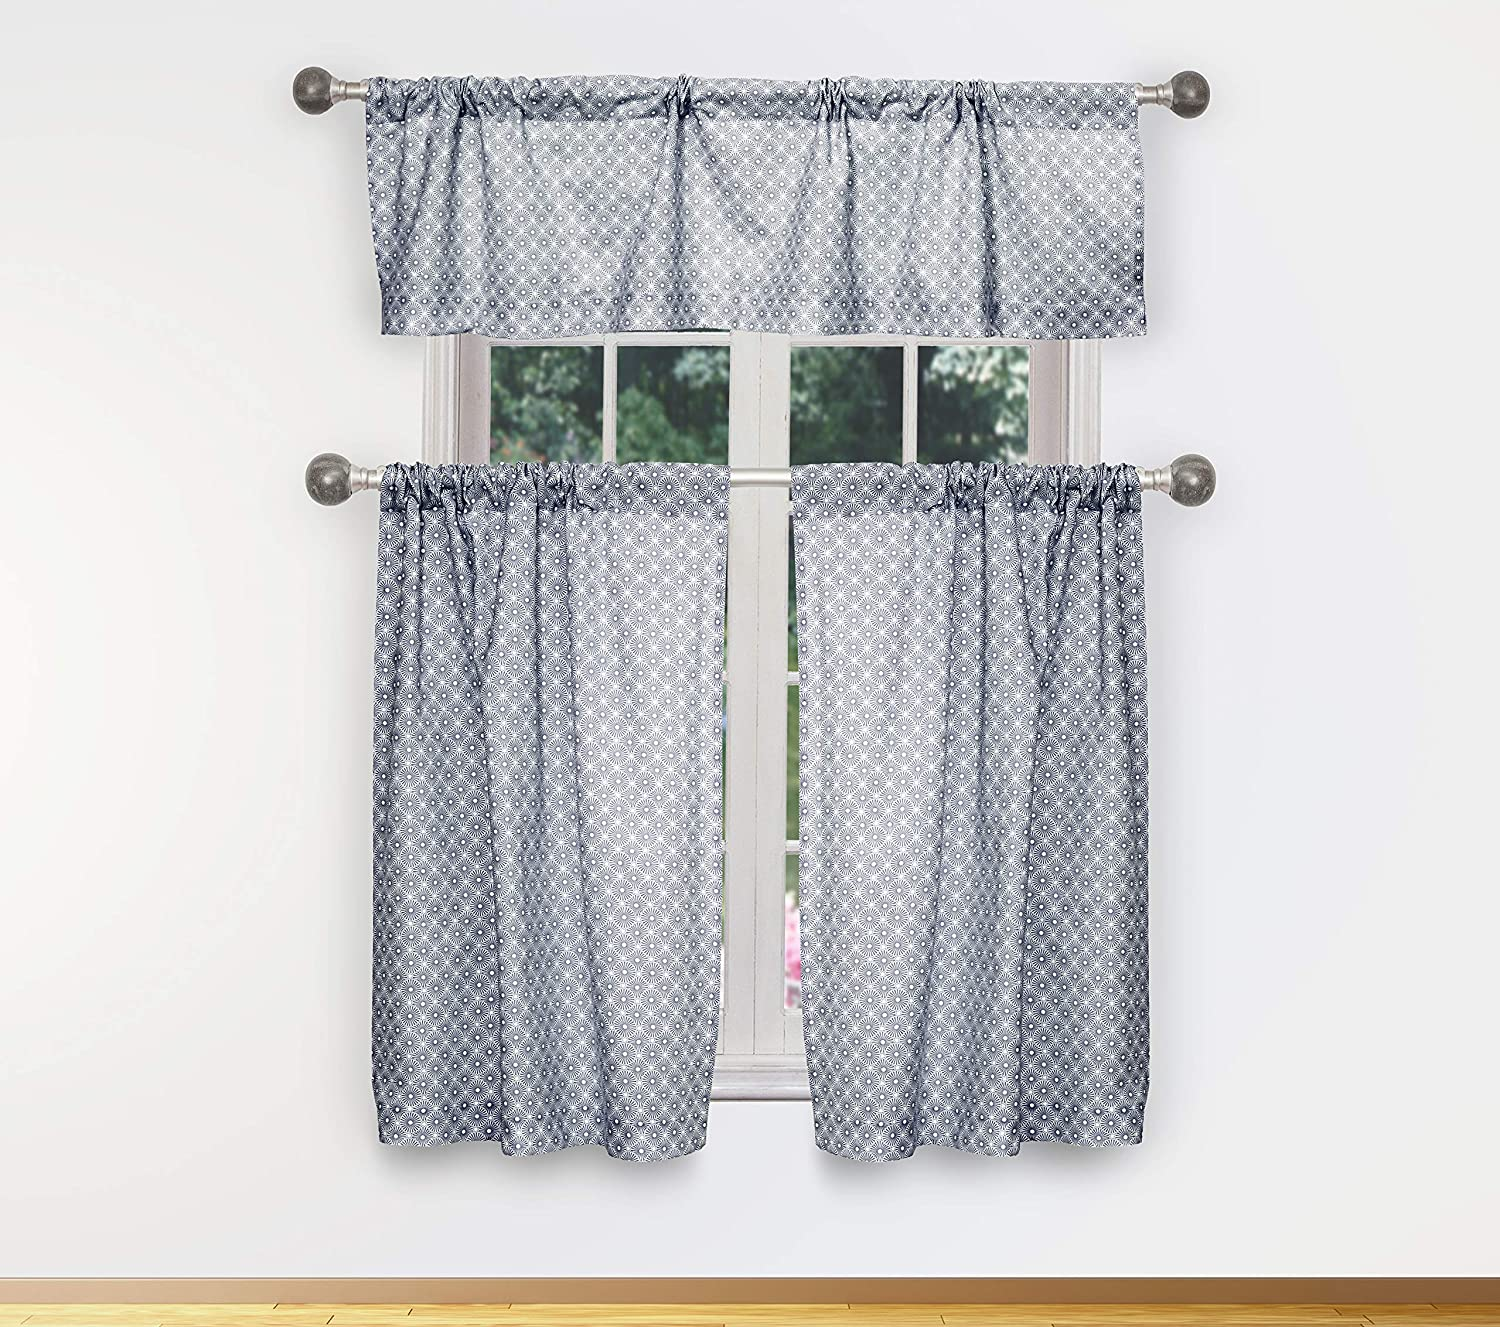 58 X 15 Inch Navy CELE 15137D=12 Laundry or Bedroom Bath Cafe Vera Neumann Celestia Floral Paisley Print Curtain Valance Set for Small Kitchen Window